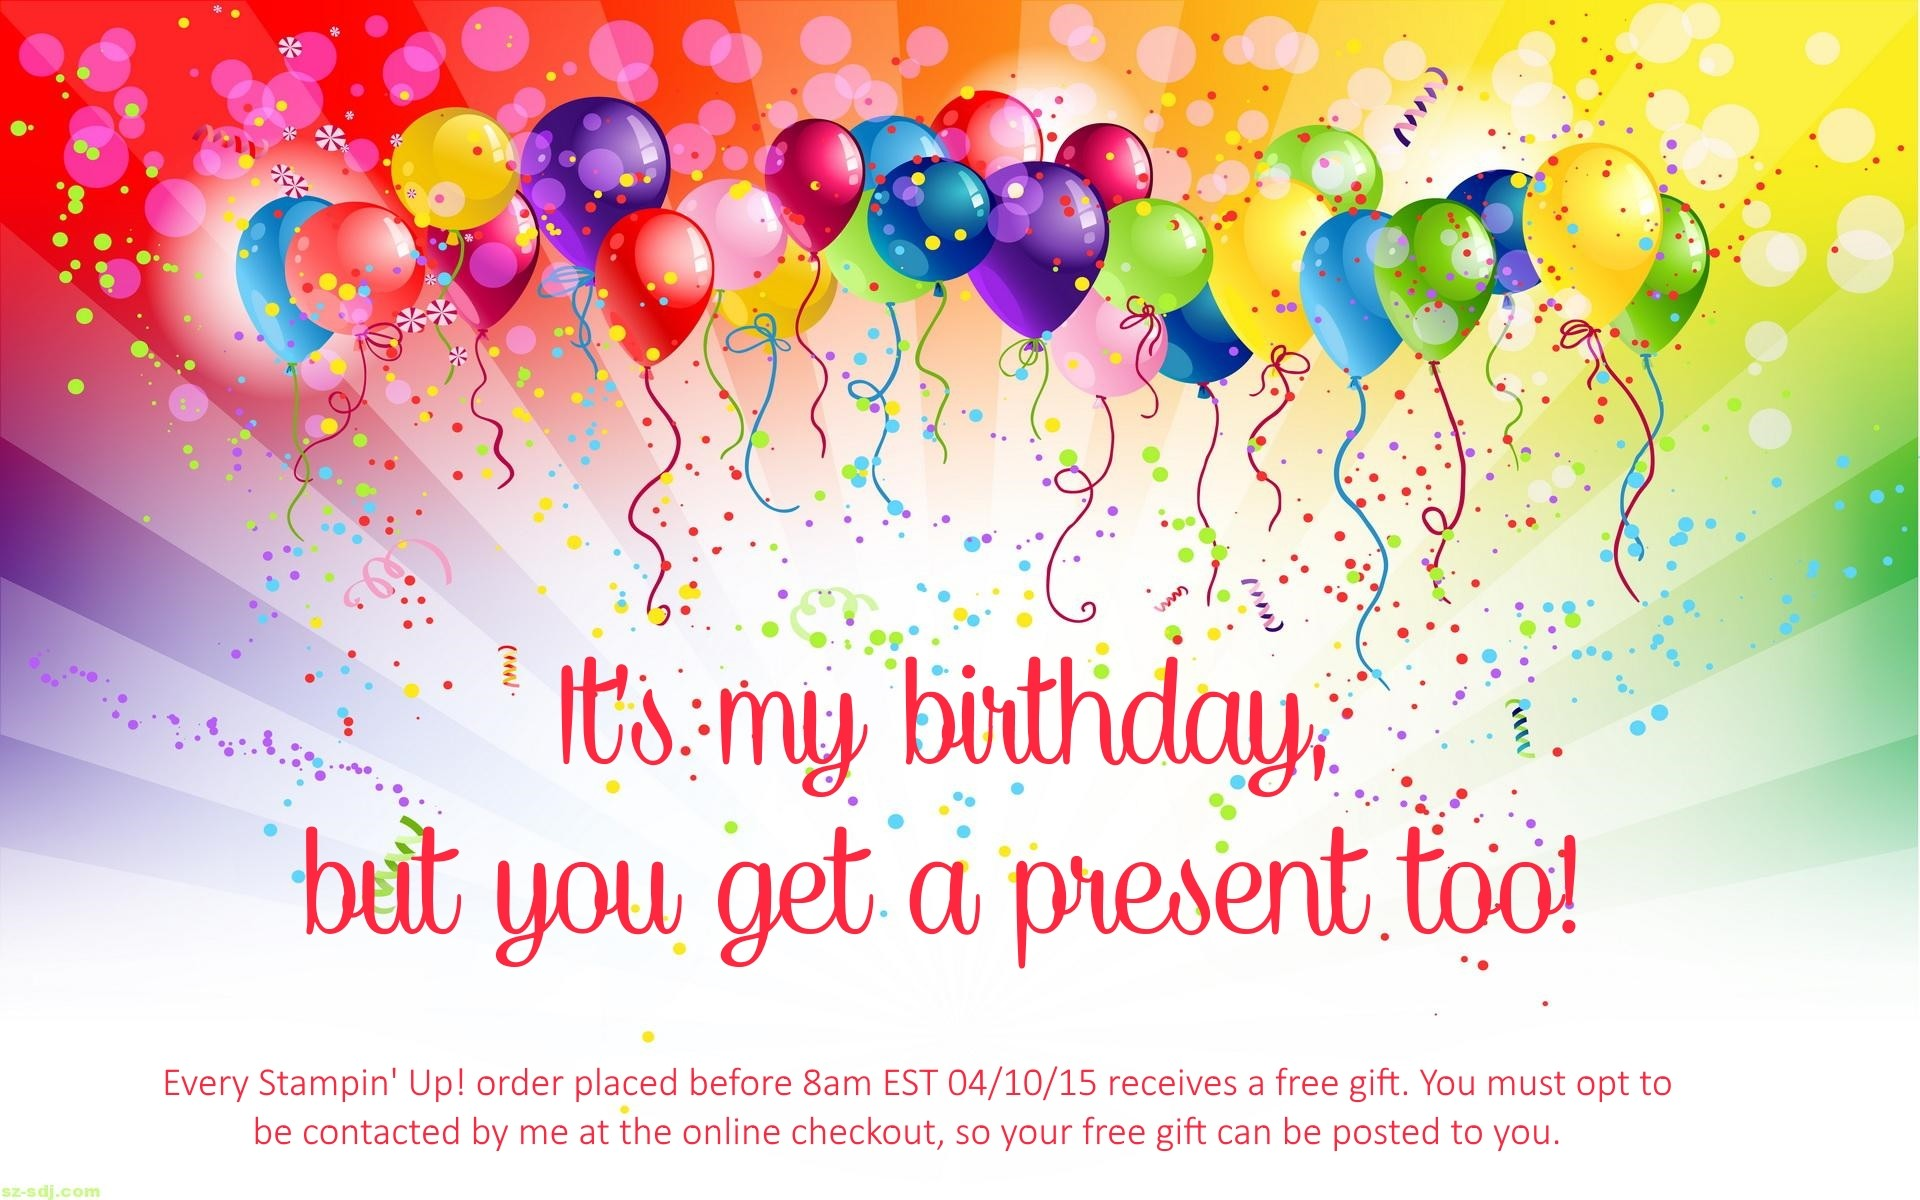 it's my birthday wallpaper ; 1176087-today-is-my-birthday-wallpaper-1920x1200-lockscreen